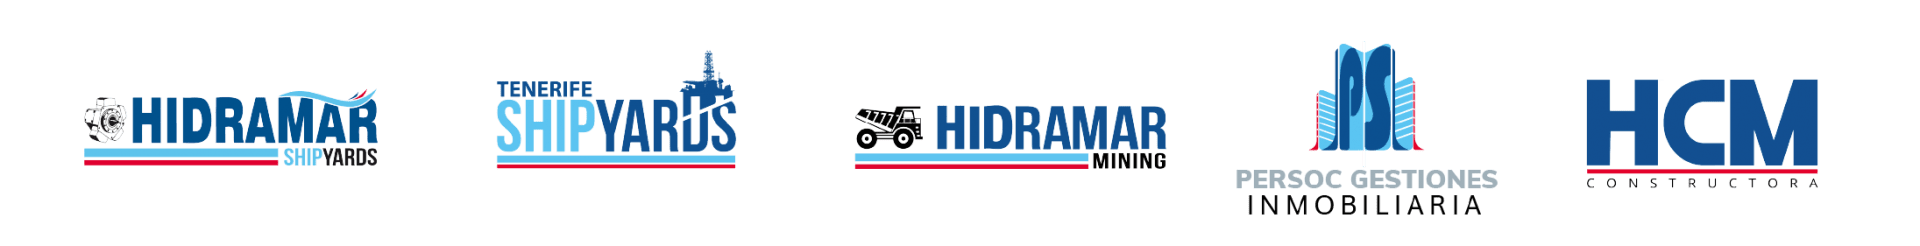 Empresas de Hidramar Group